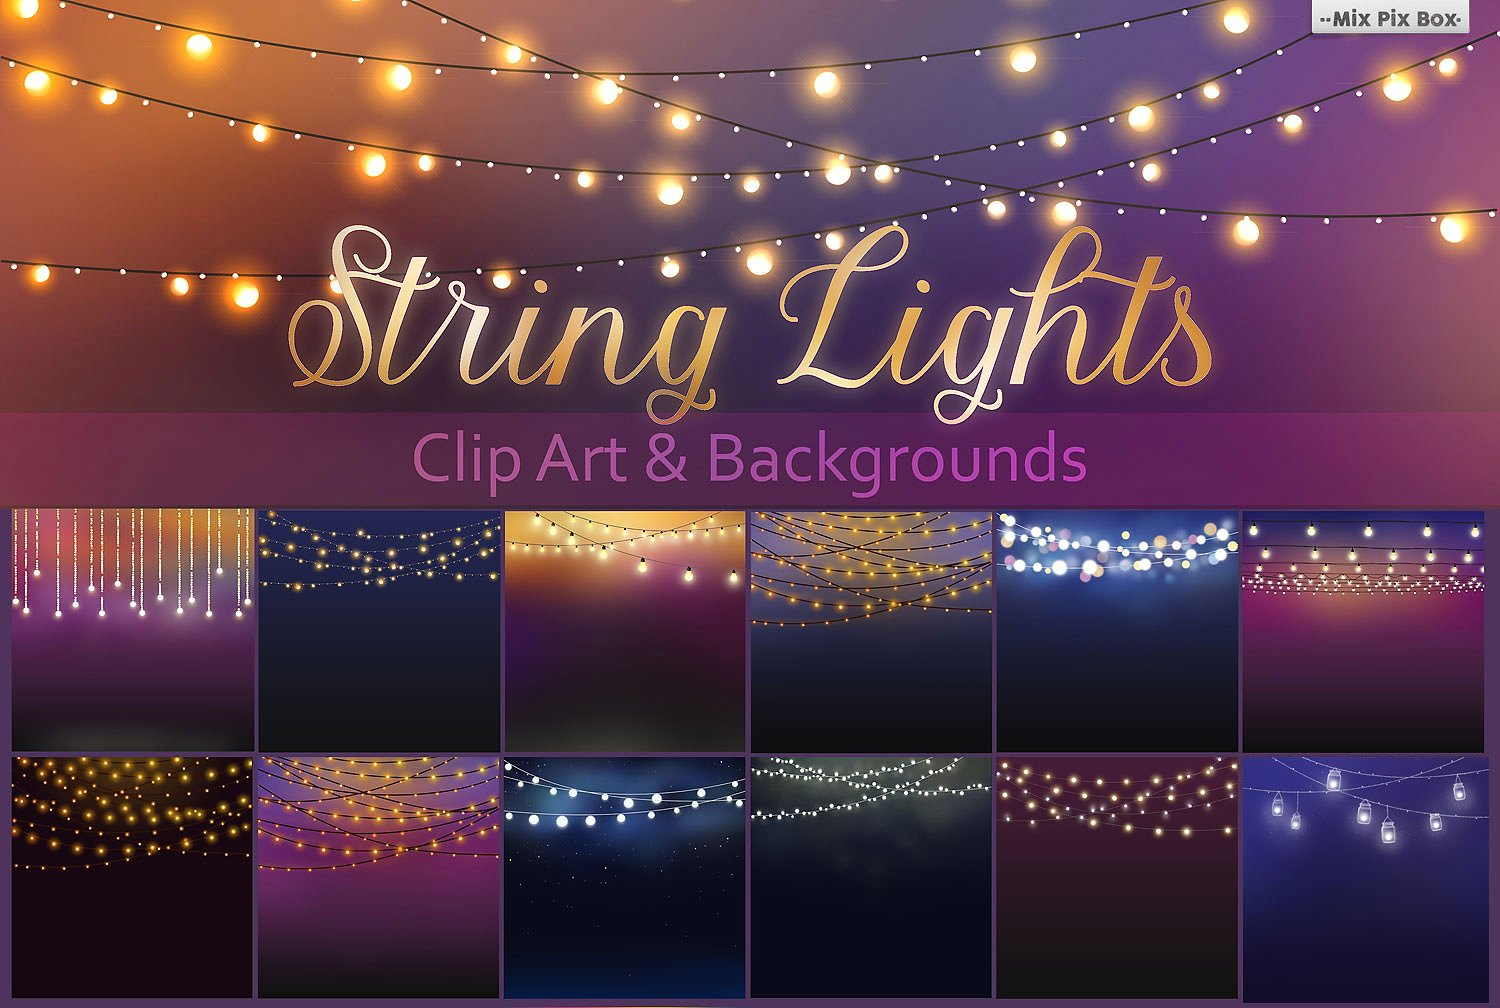 659 String Lights free clipart.